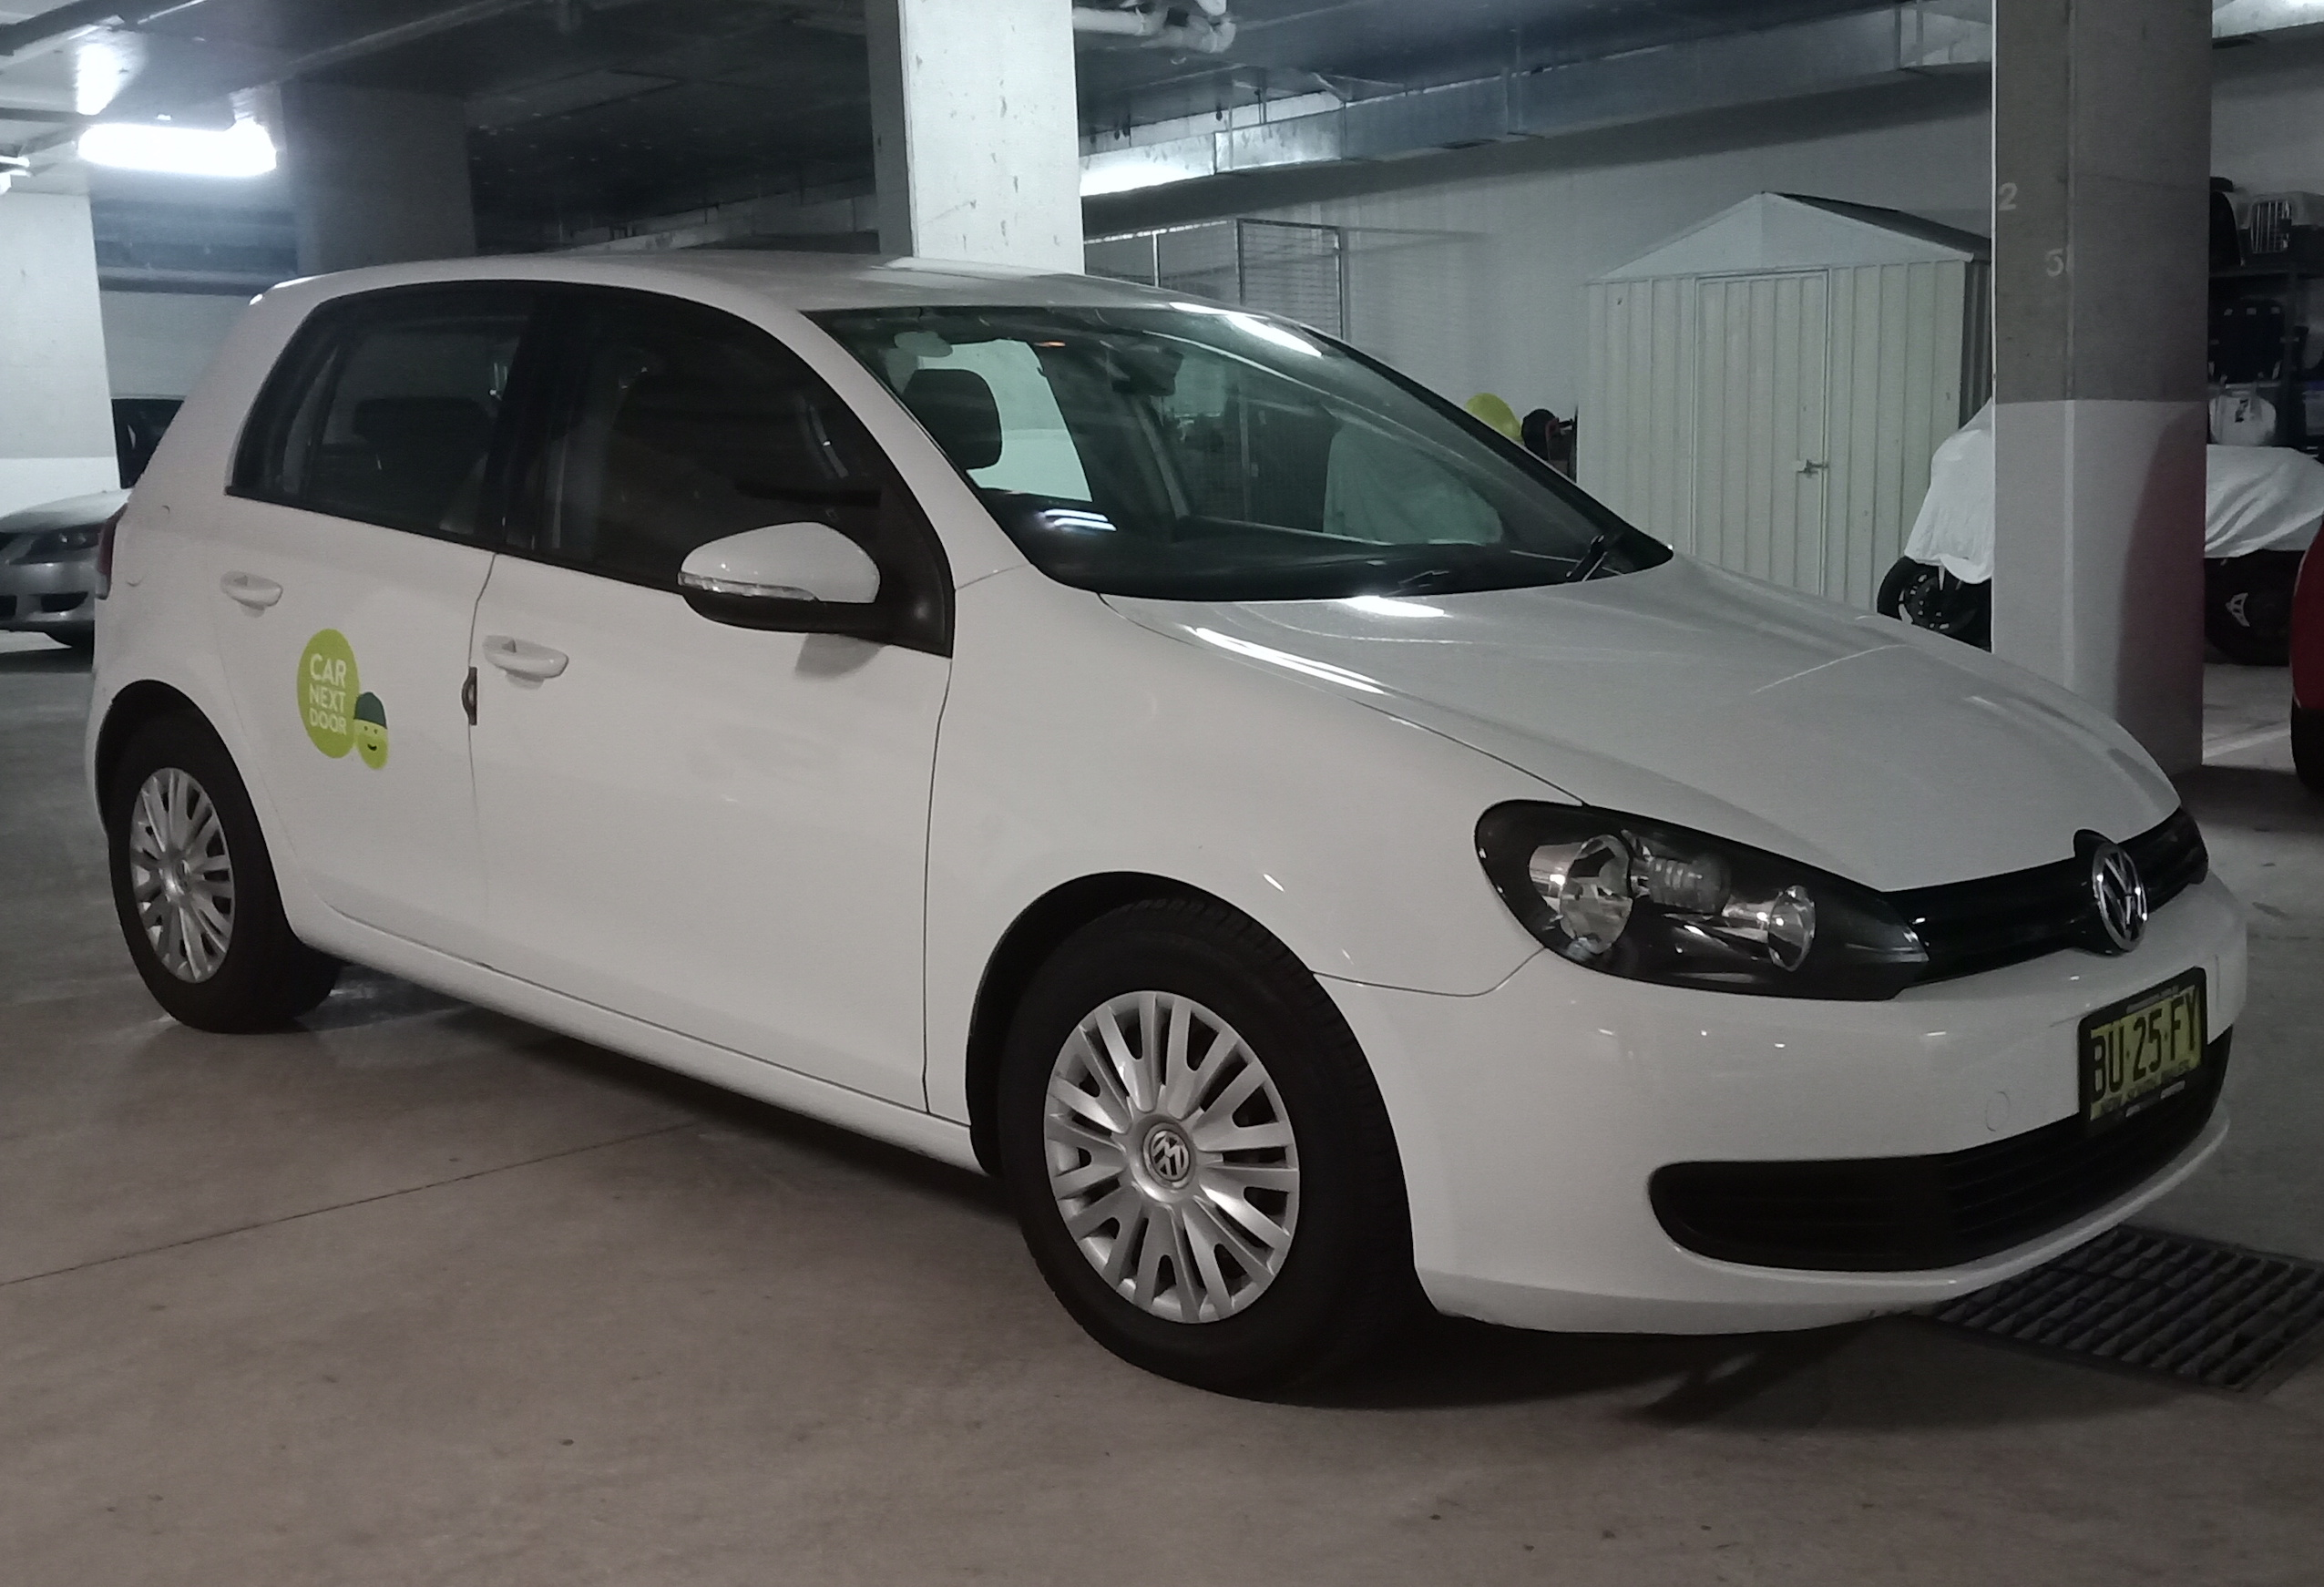 Picture of Pavlo's 2010 Volkswagen Golf